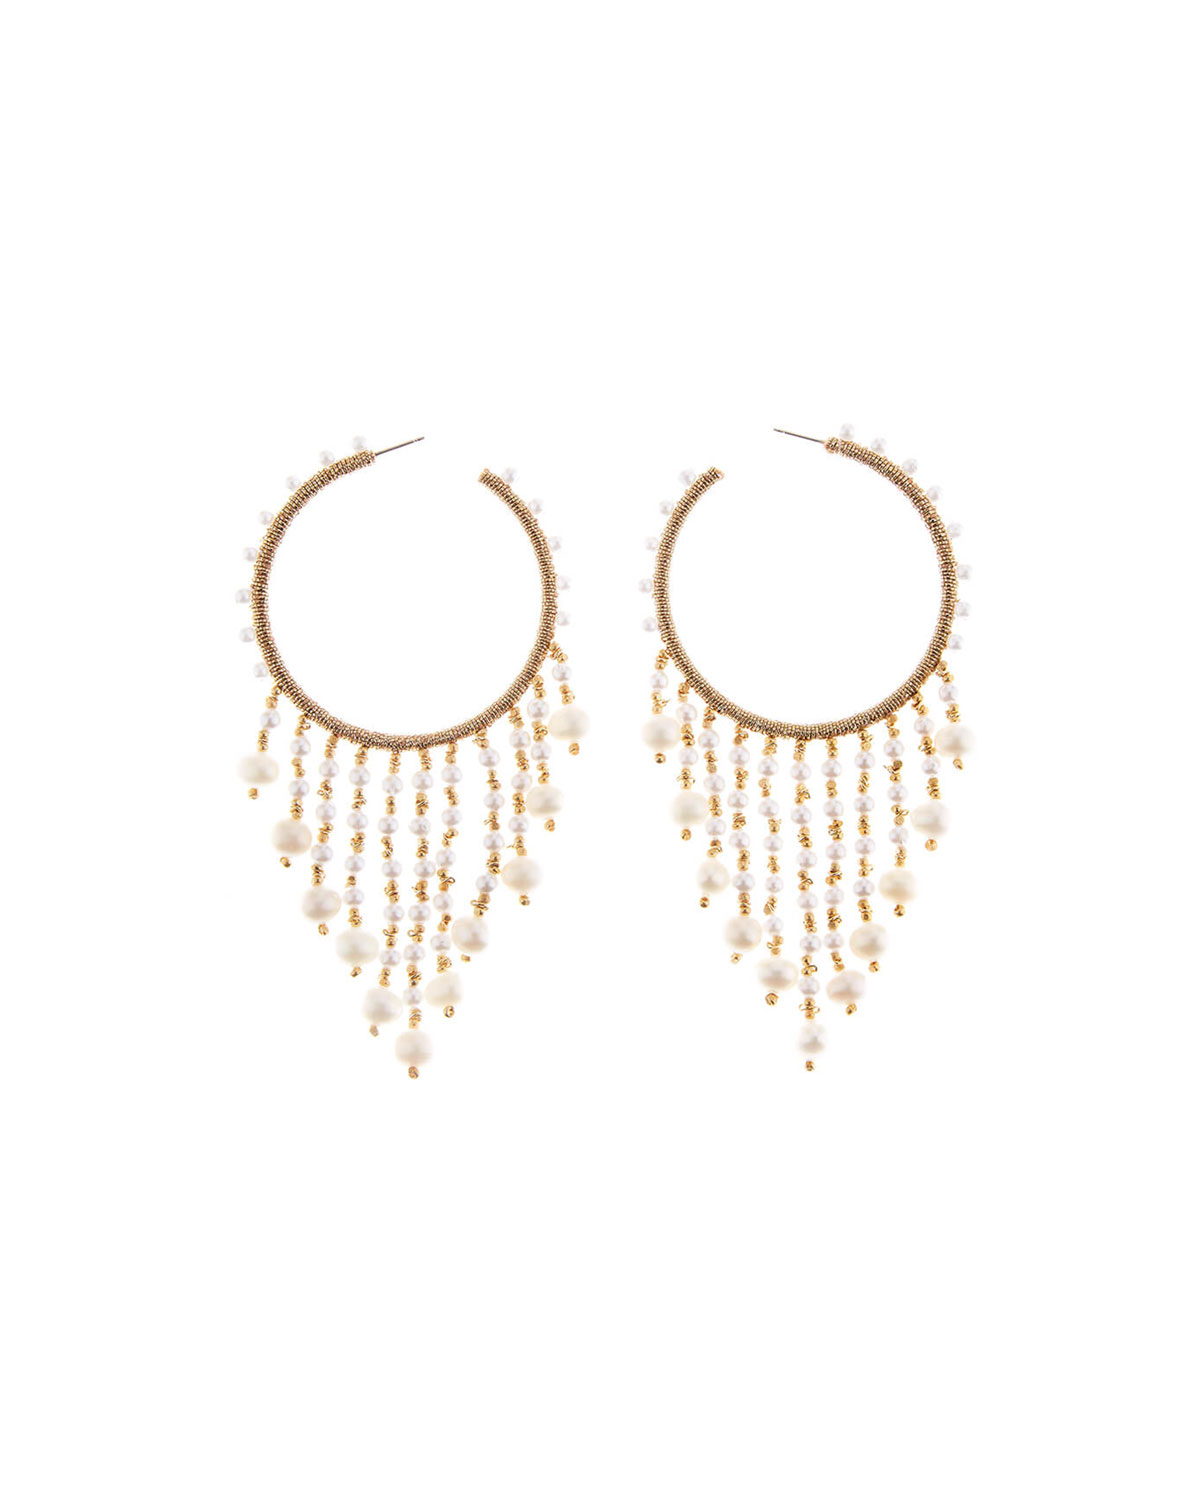 Oscar de la Renta Beaded Hoop Dangle Earrings